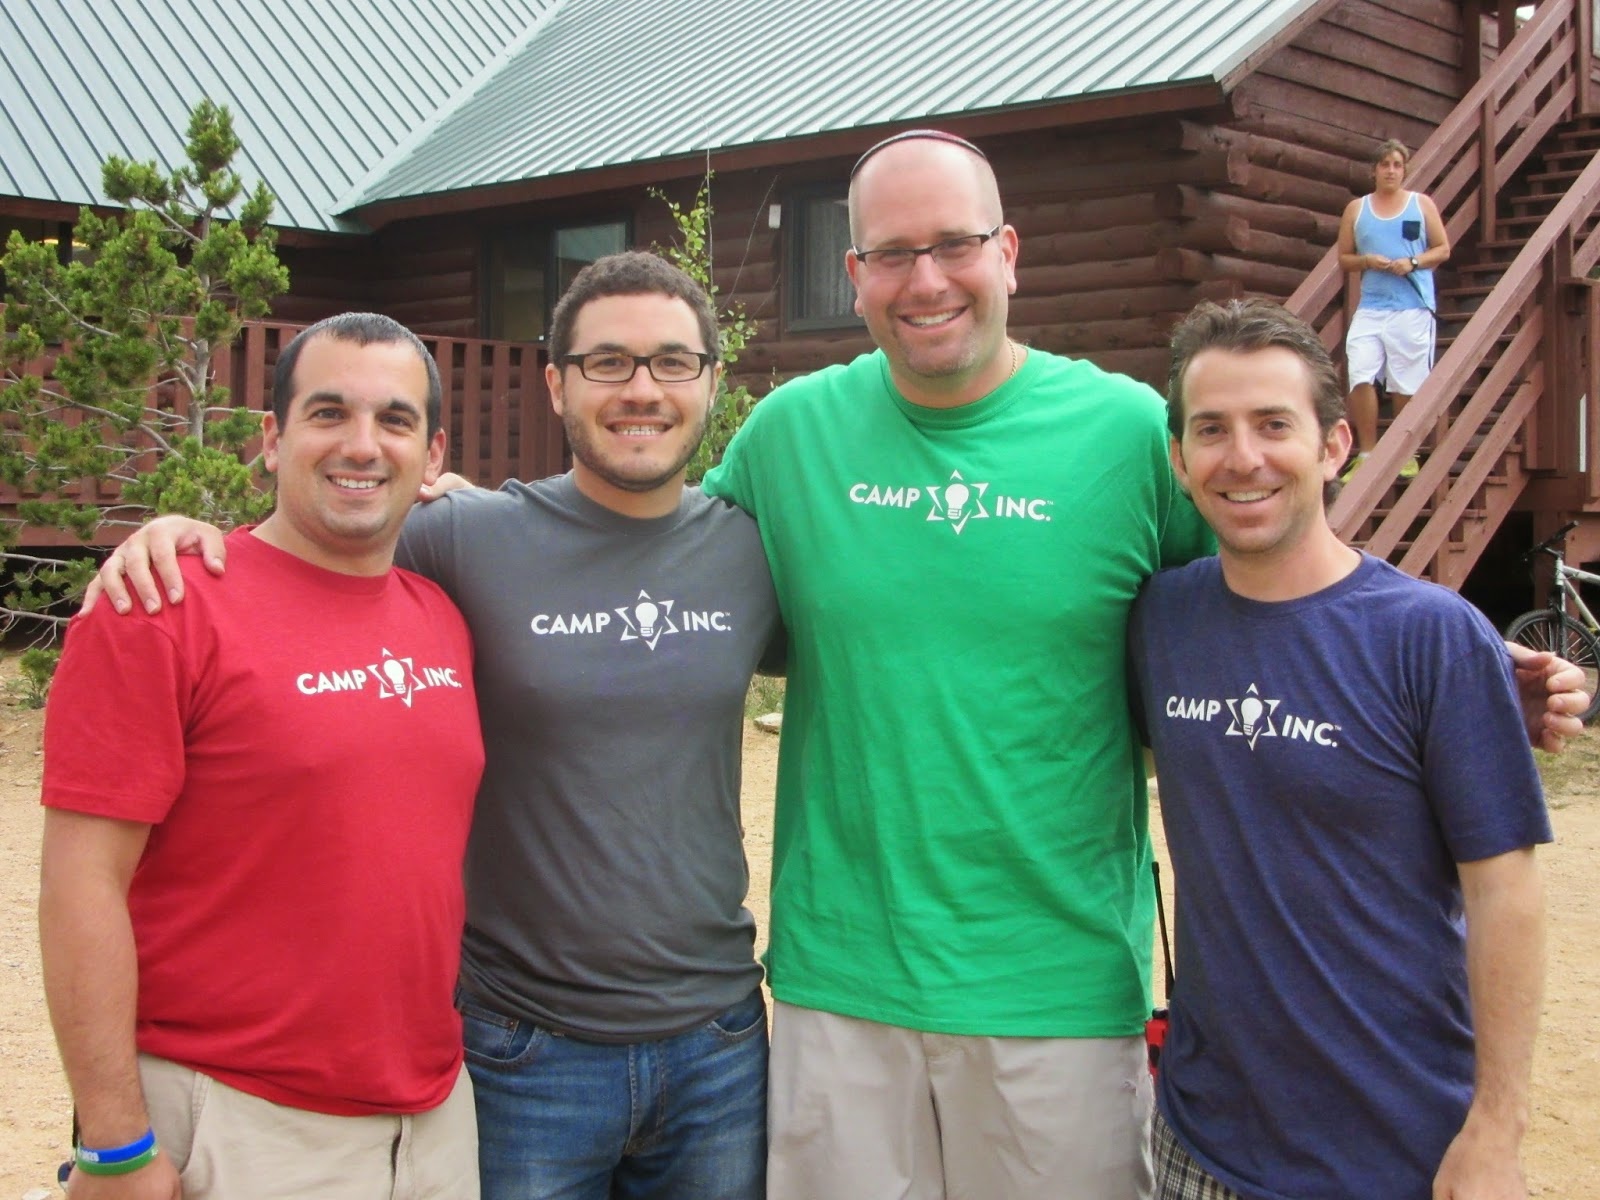 Rabbi Jason Miller with the leadership team of Camp Inc. (Dan Baer, Jonathan Lev and Josh Pierce)